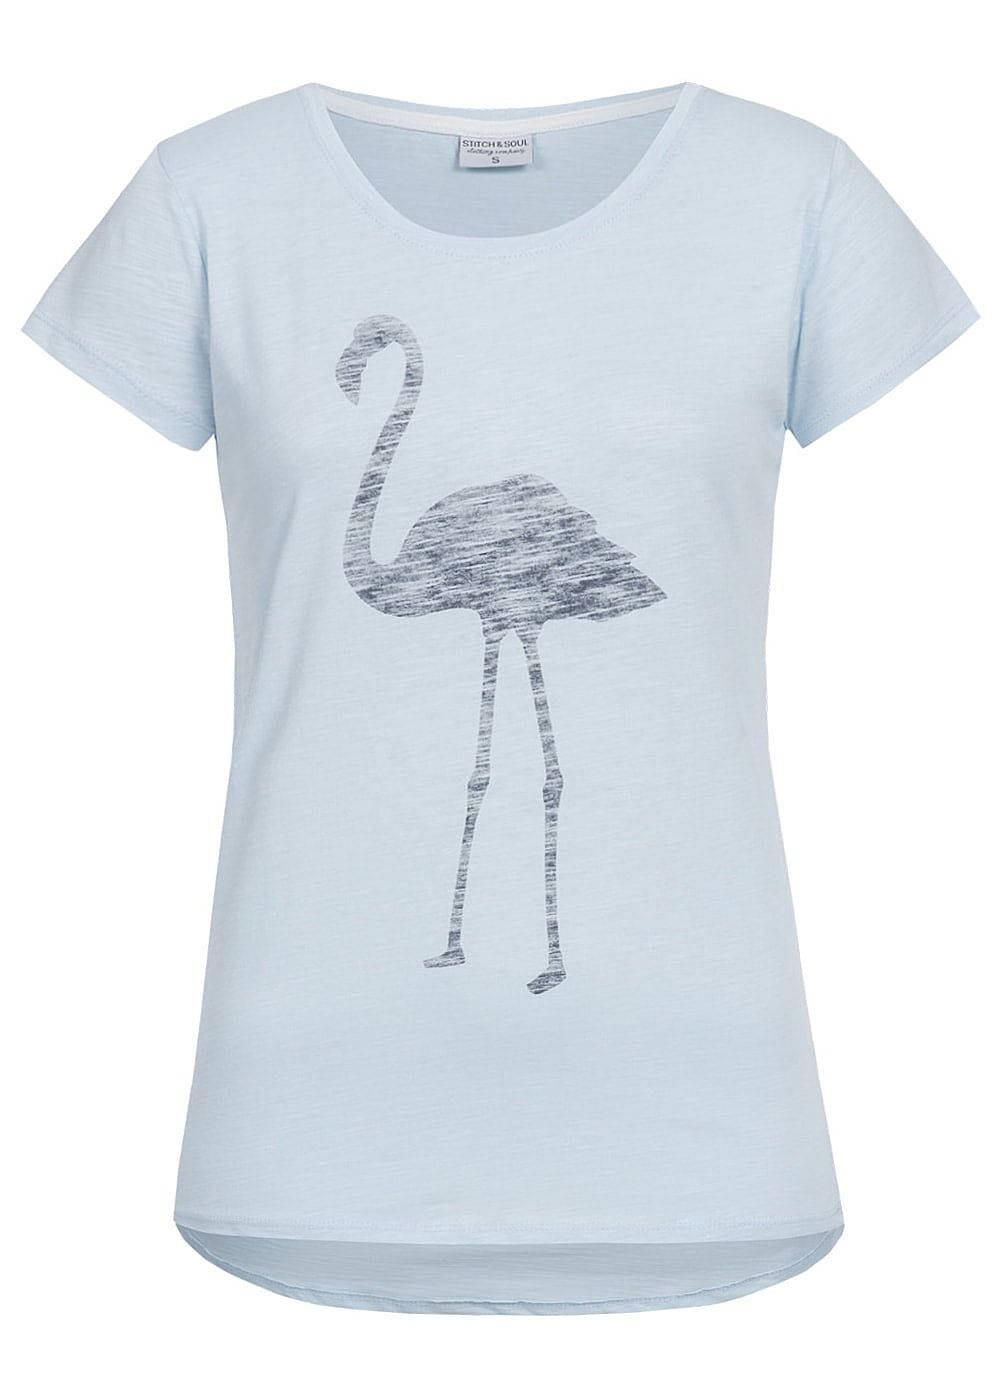 eight2nine damen t shirt flamingo print vokuhila by stitch and soul hell blau 77onlineshop. Black Bedroom Furniture Sets. Home Design Ideas